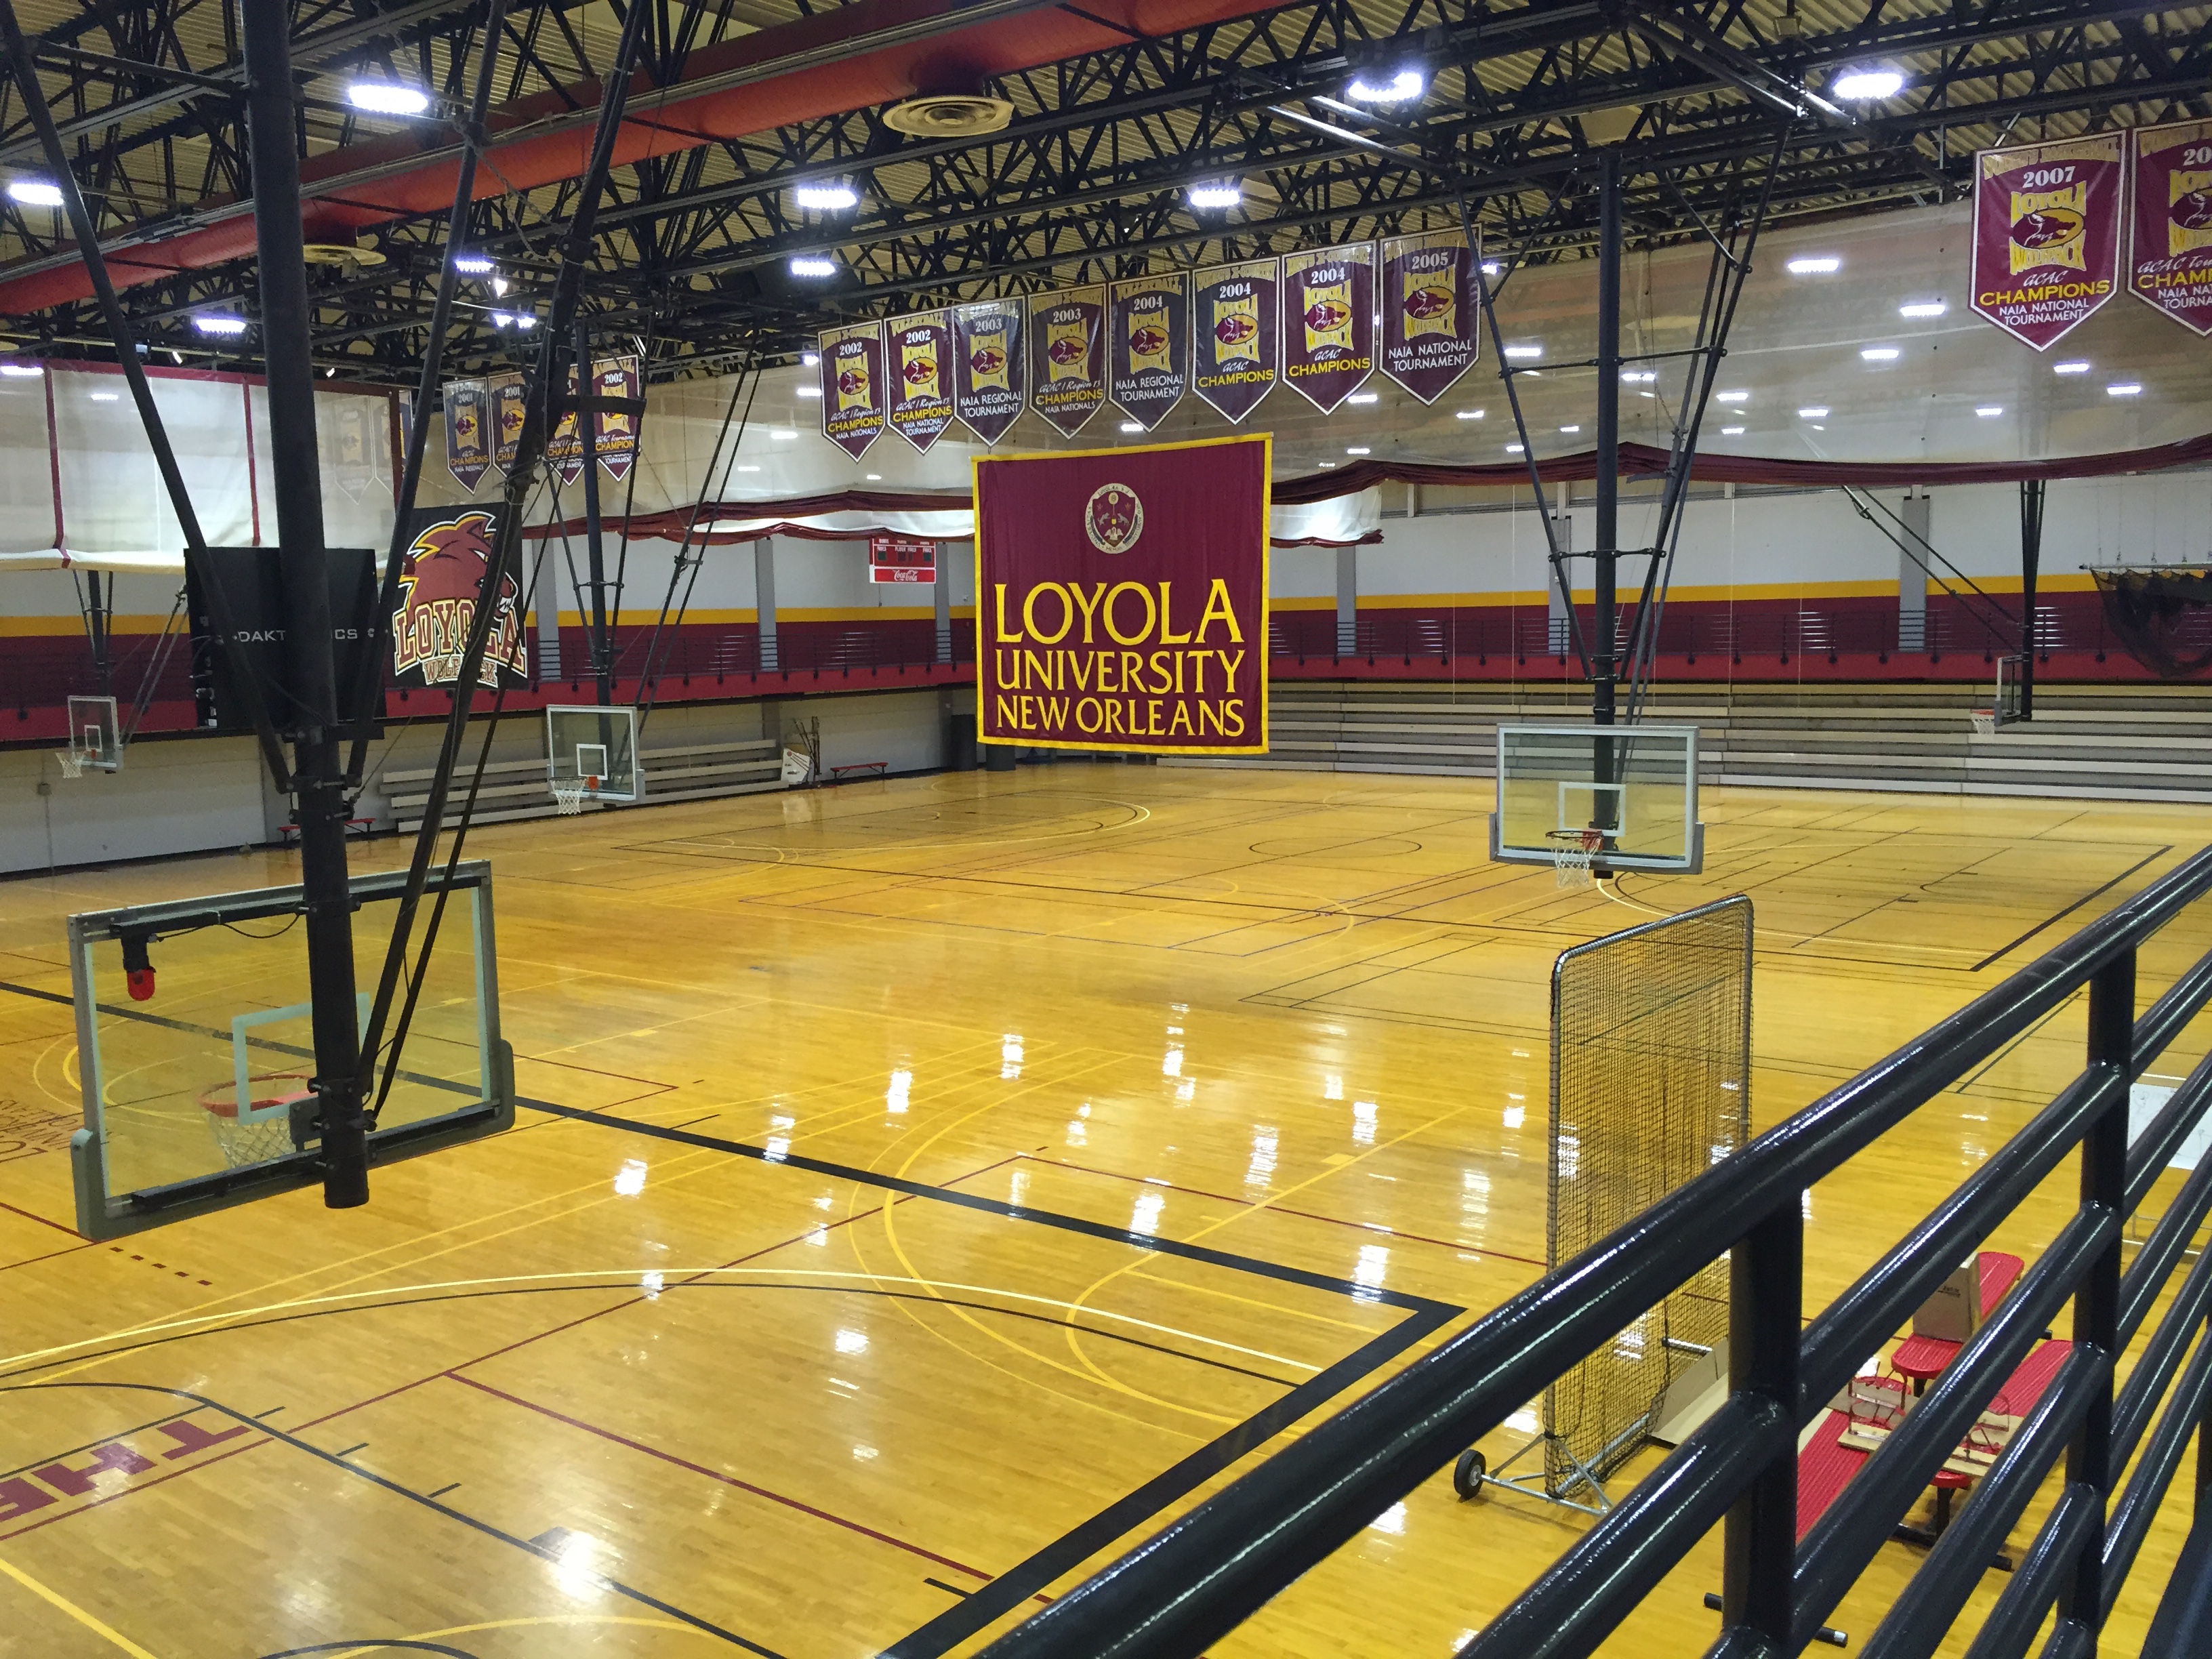 The former Den shows off its new colors on August 17. The Loyola University Sports Complex received new flooring and other renovations thanks to First NBC's $1.5 million donation. Photo credit: Ryan Micklin